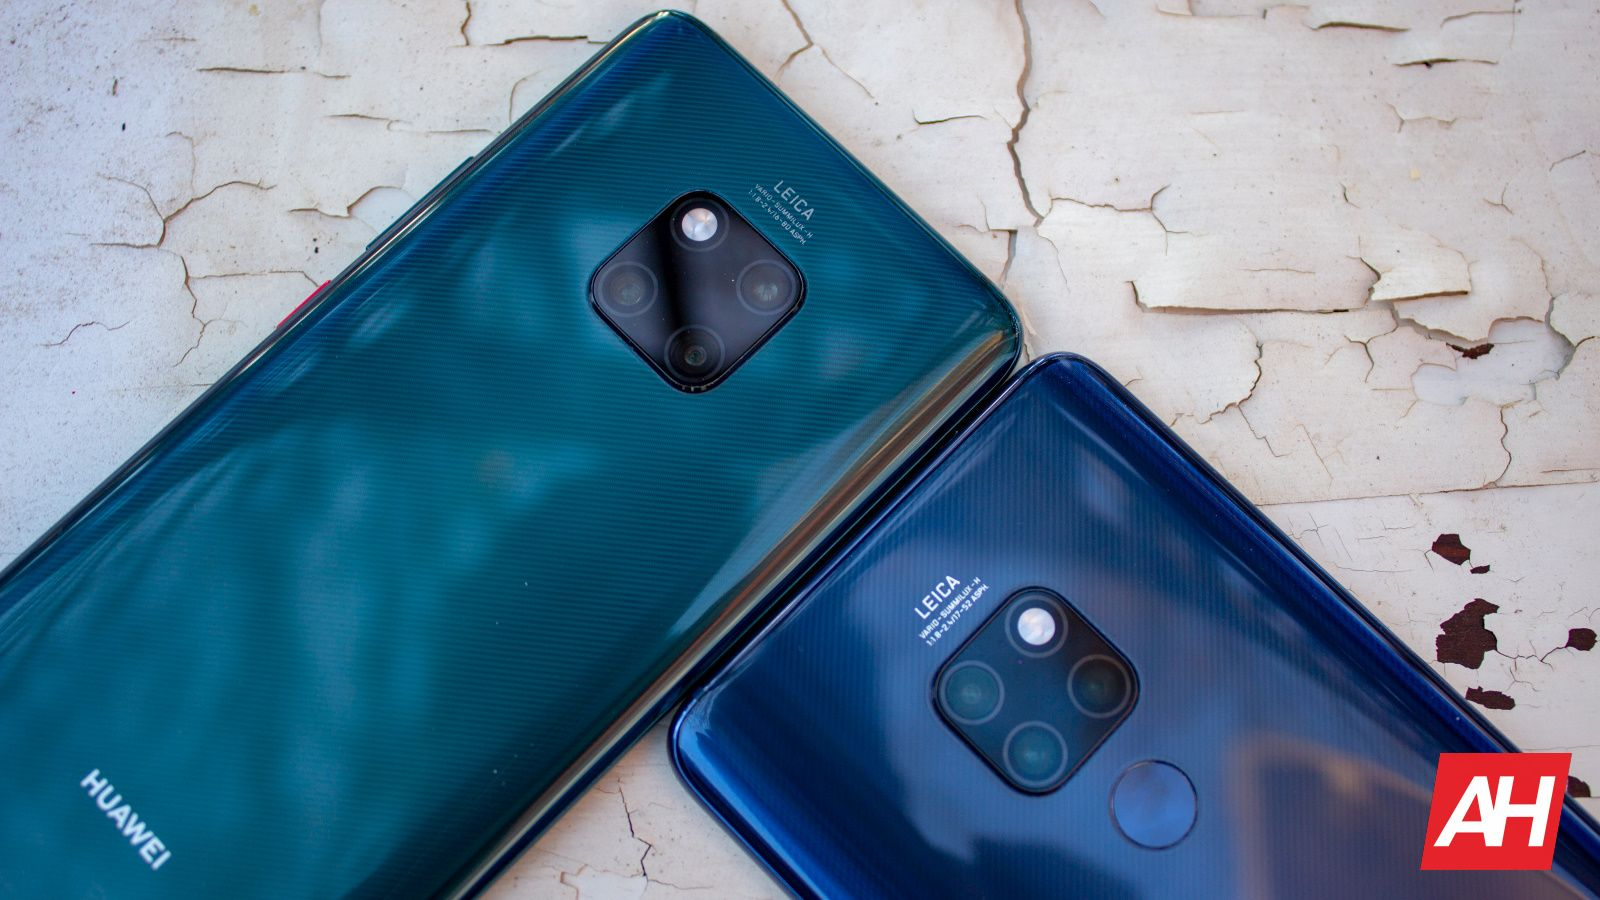 Surprise: Huawei Mate 20 Pro Camera Not Clearly Superior To